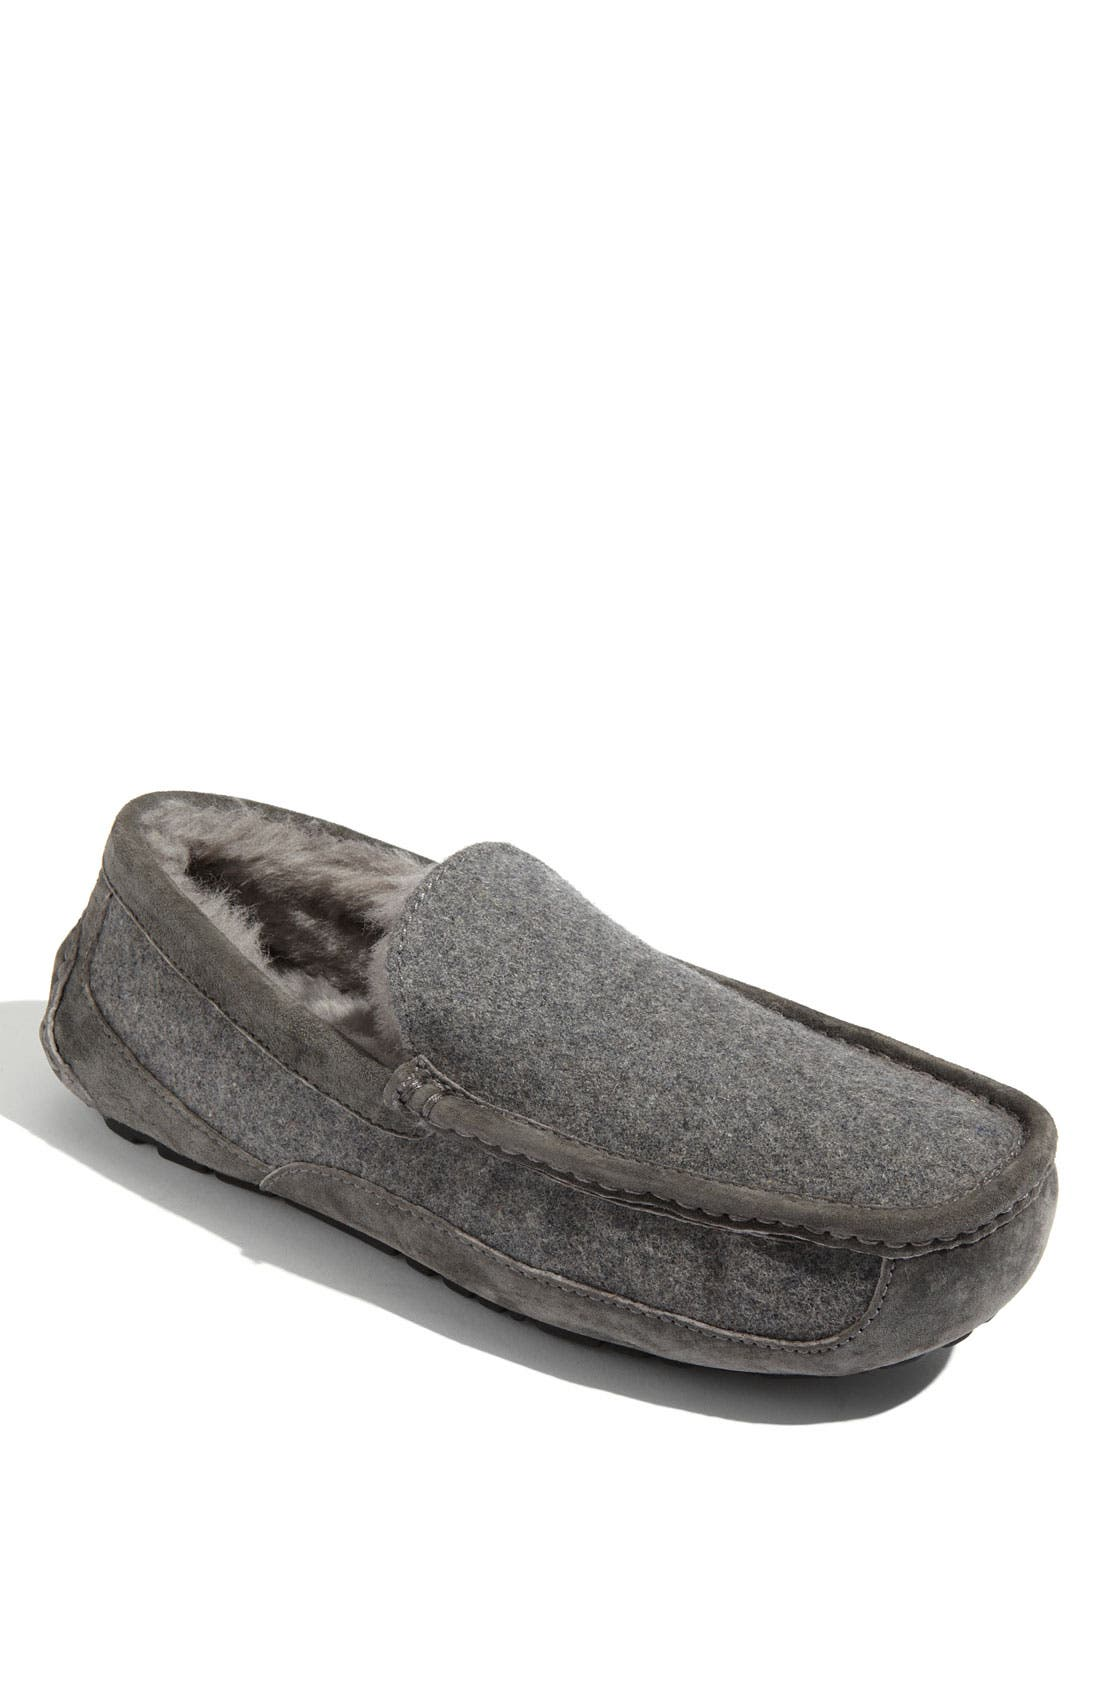 Australia 'Ascot' Wool Slipper,                         Main,                         color, 027